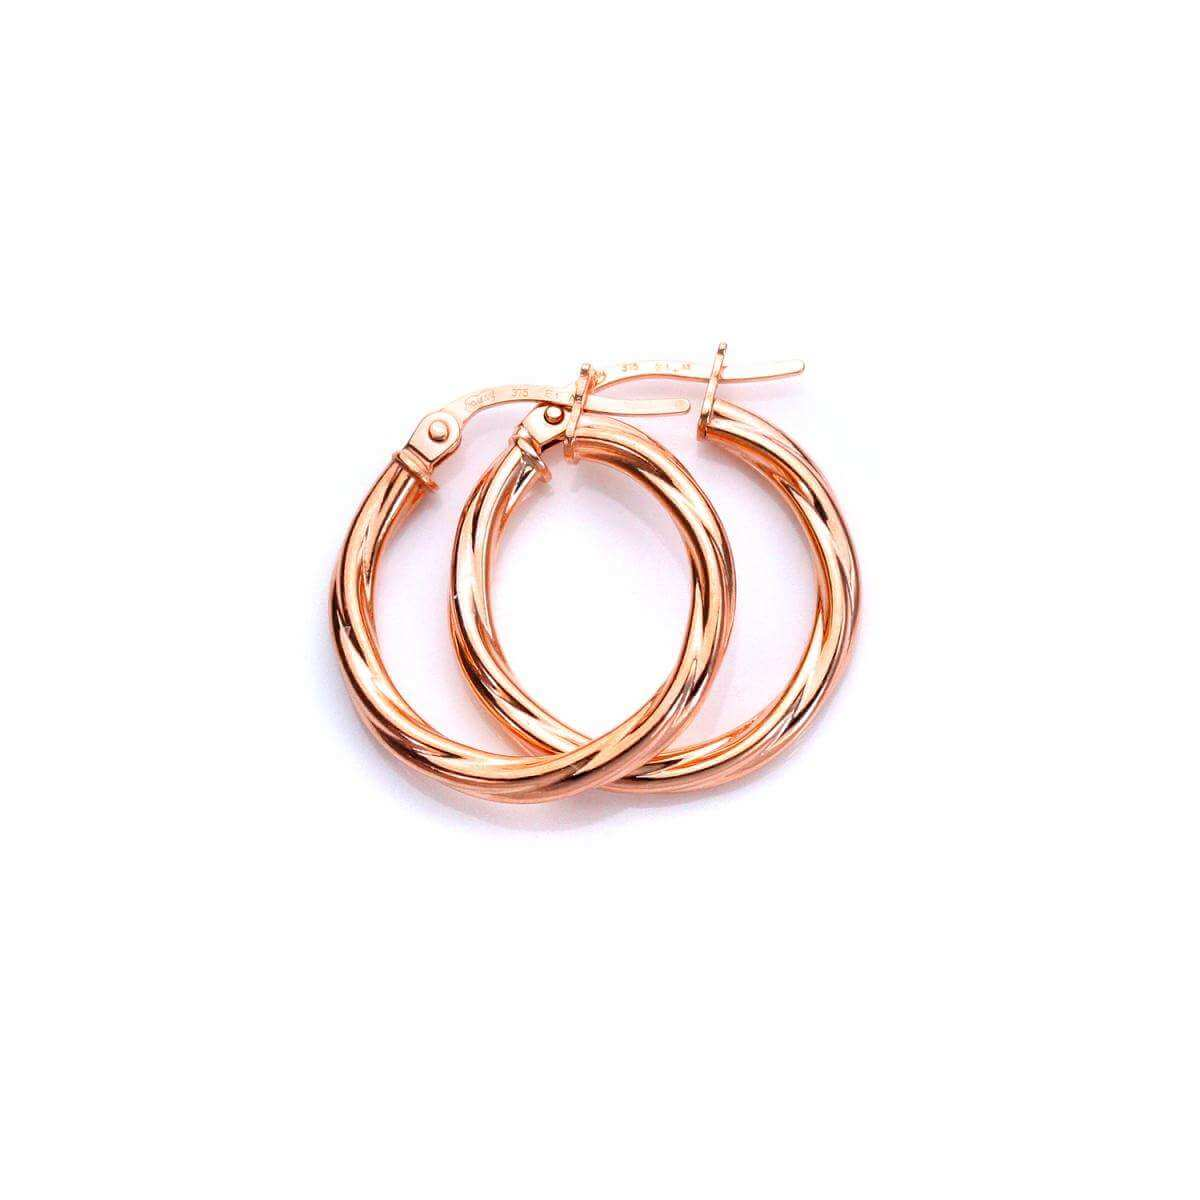 9ct Rose Gold 15mm Twisted Sleeper Hoop Earrings